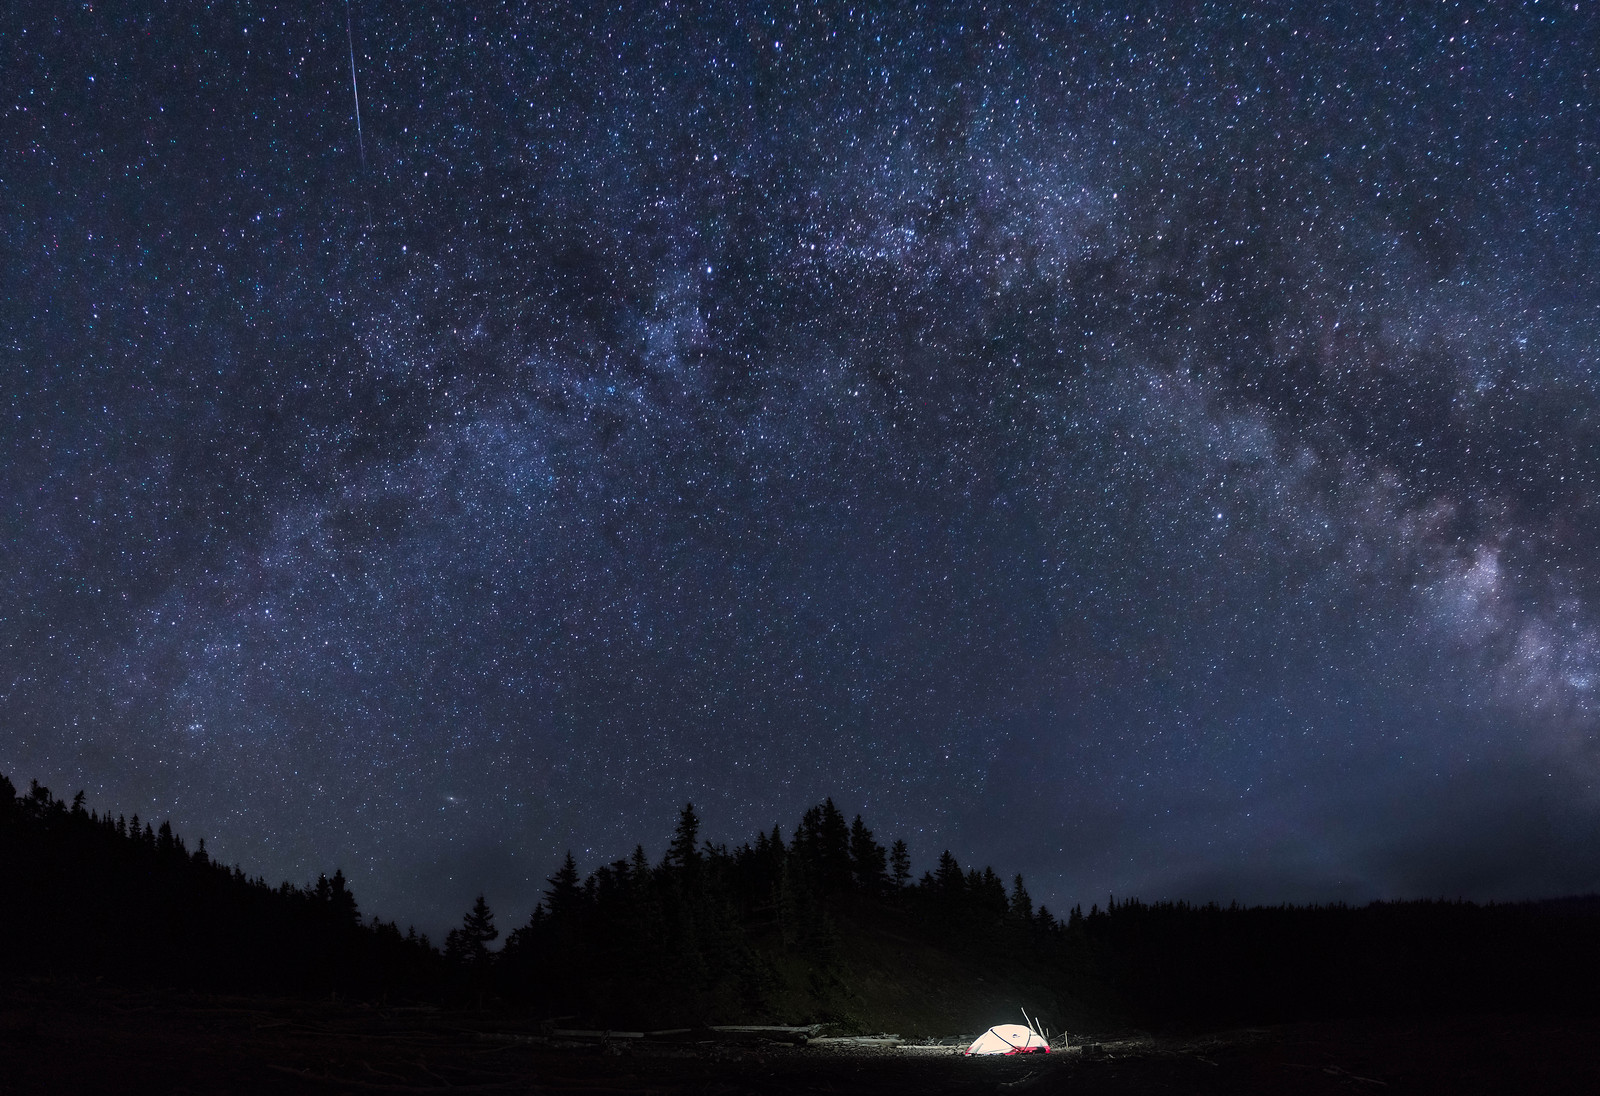 Camping under the stars on the Bay of Fundy.